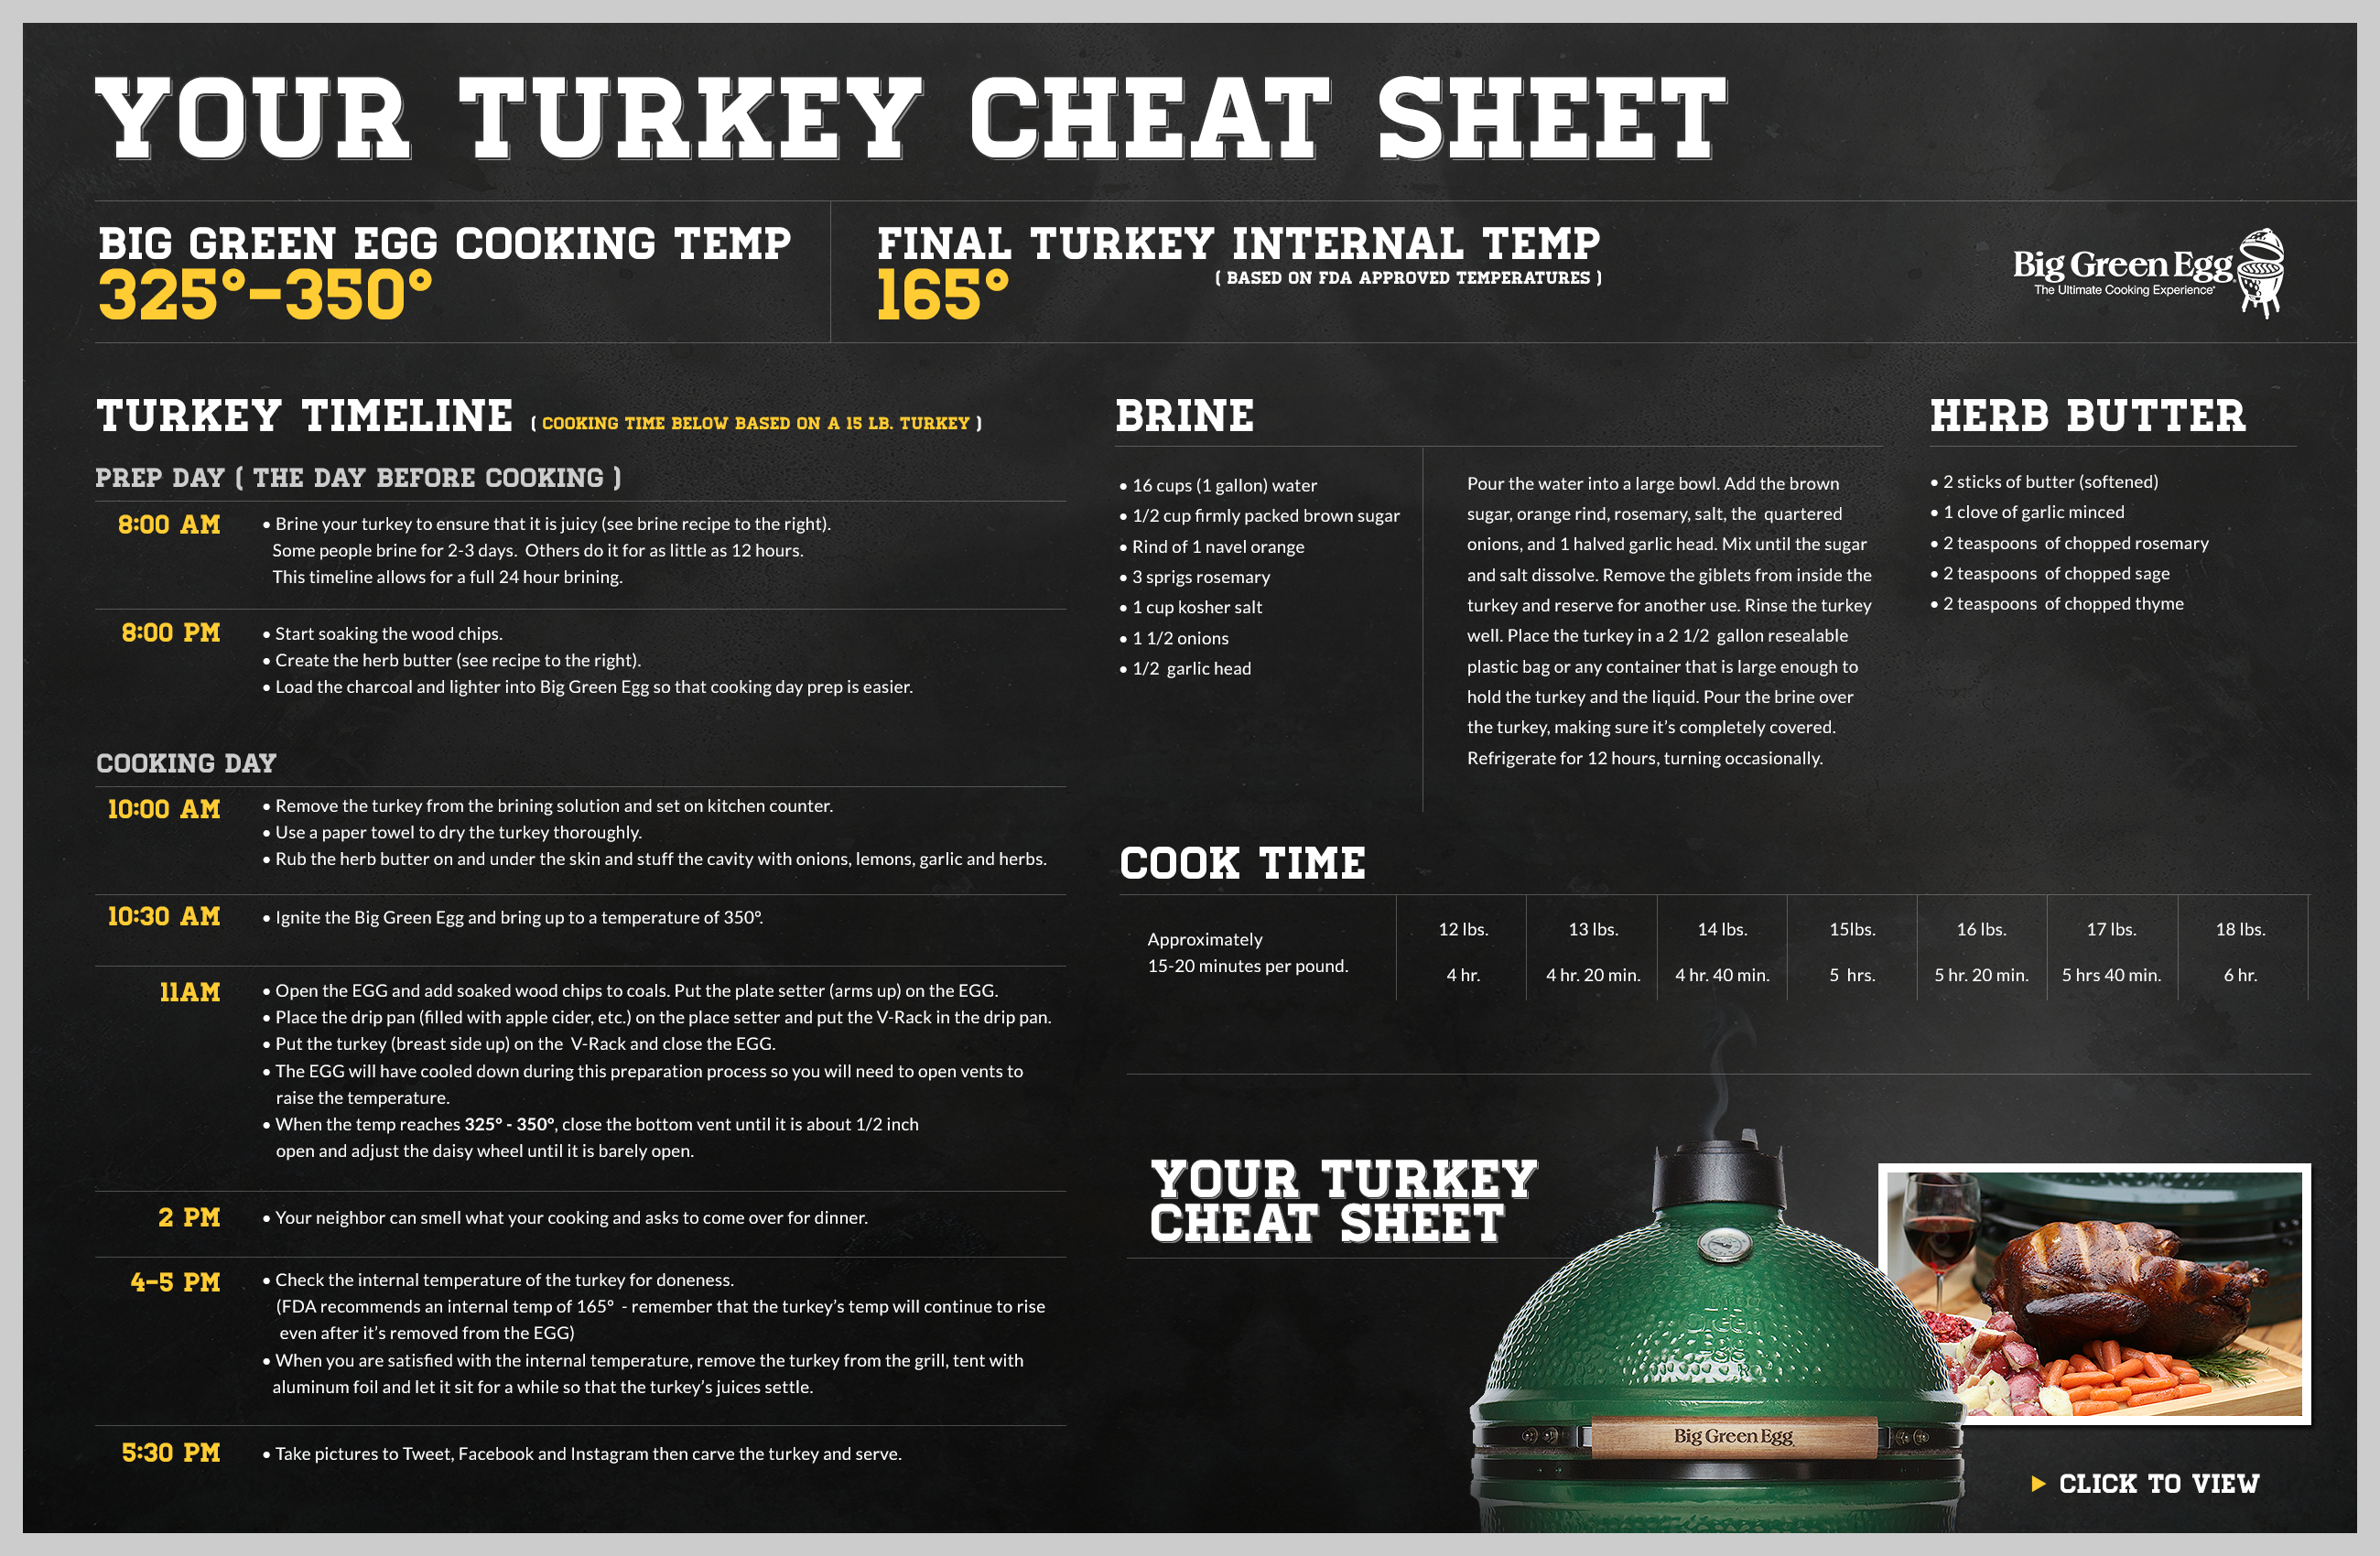 big-green-egg-turkey-cheat-sheet.png